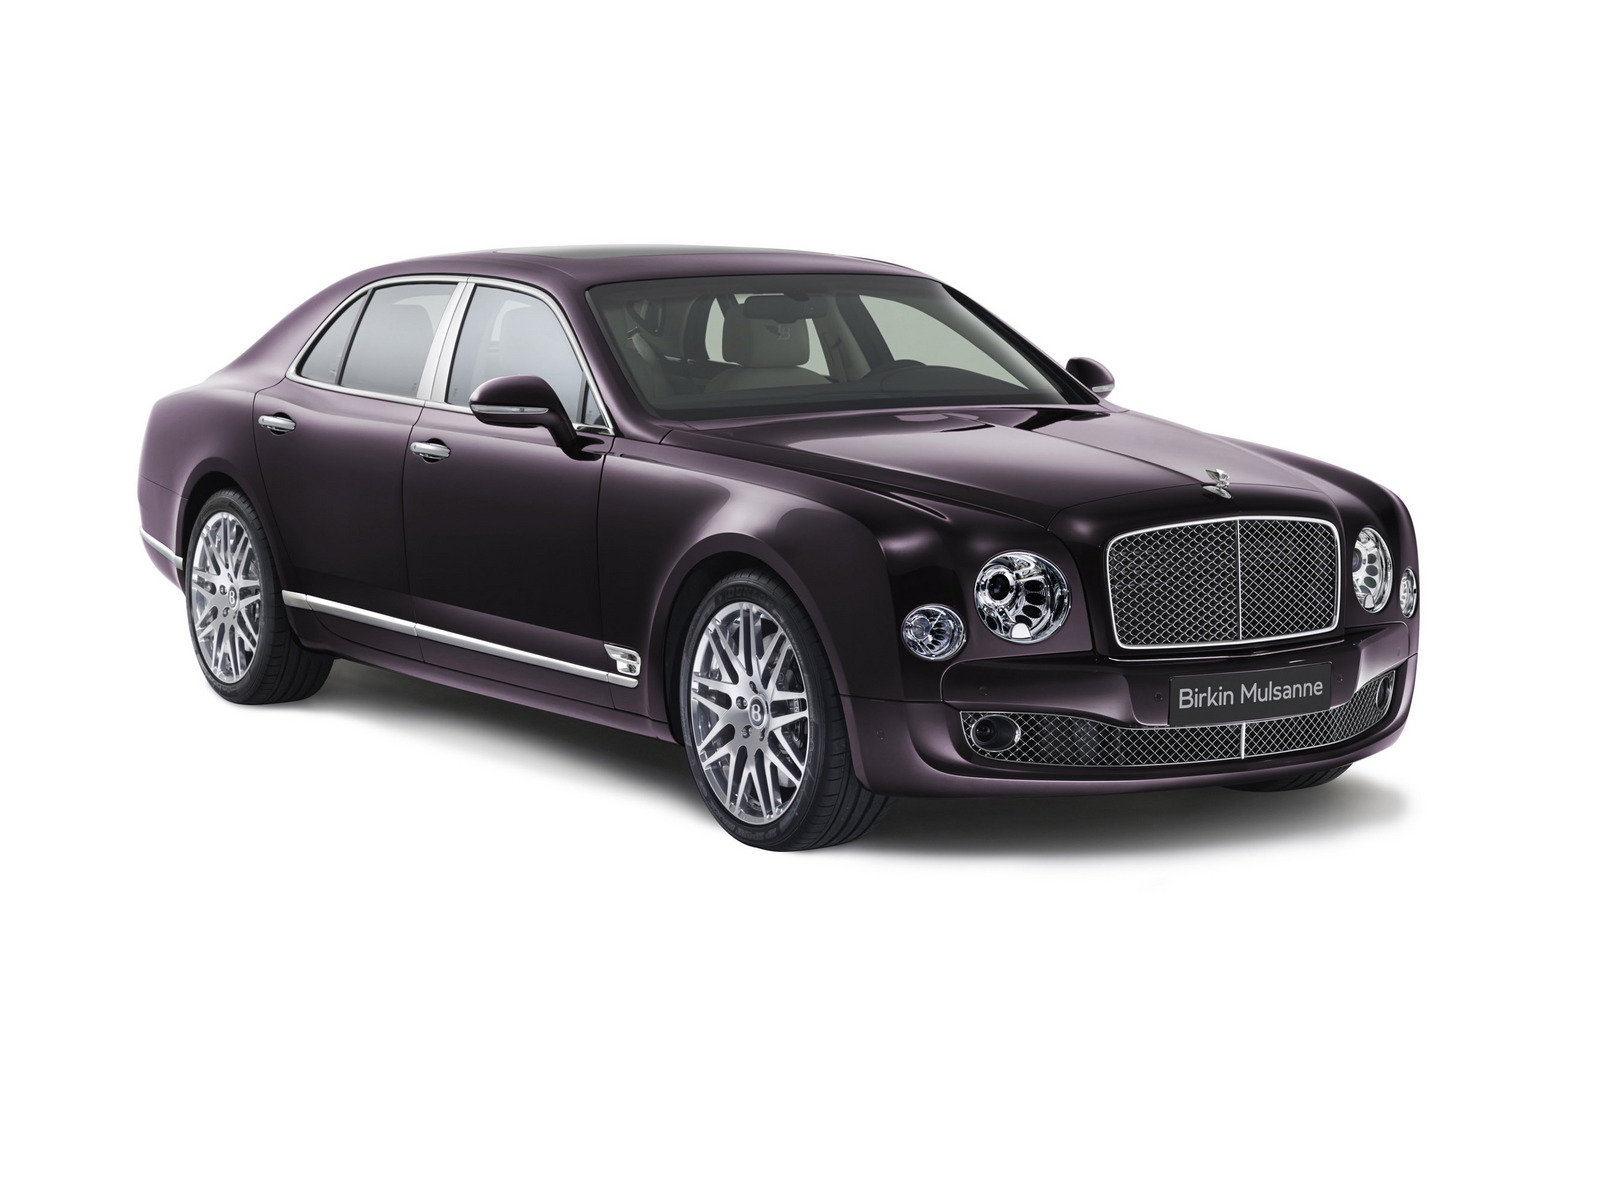 2014 bentley mulsanne birkin limited edition picture. Cars Review. Best American Auto & Cars Review